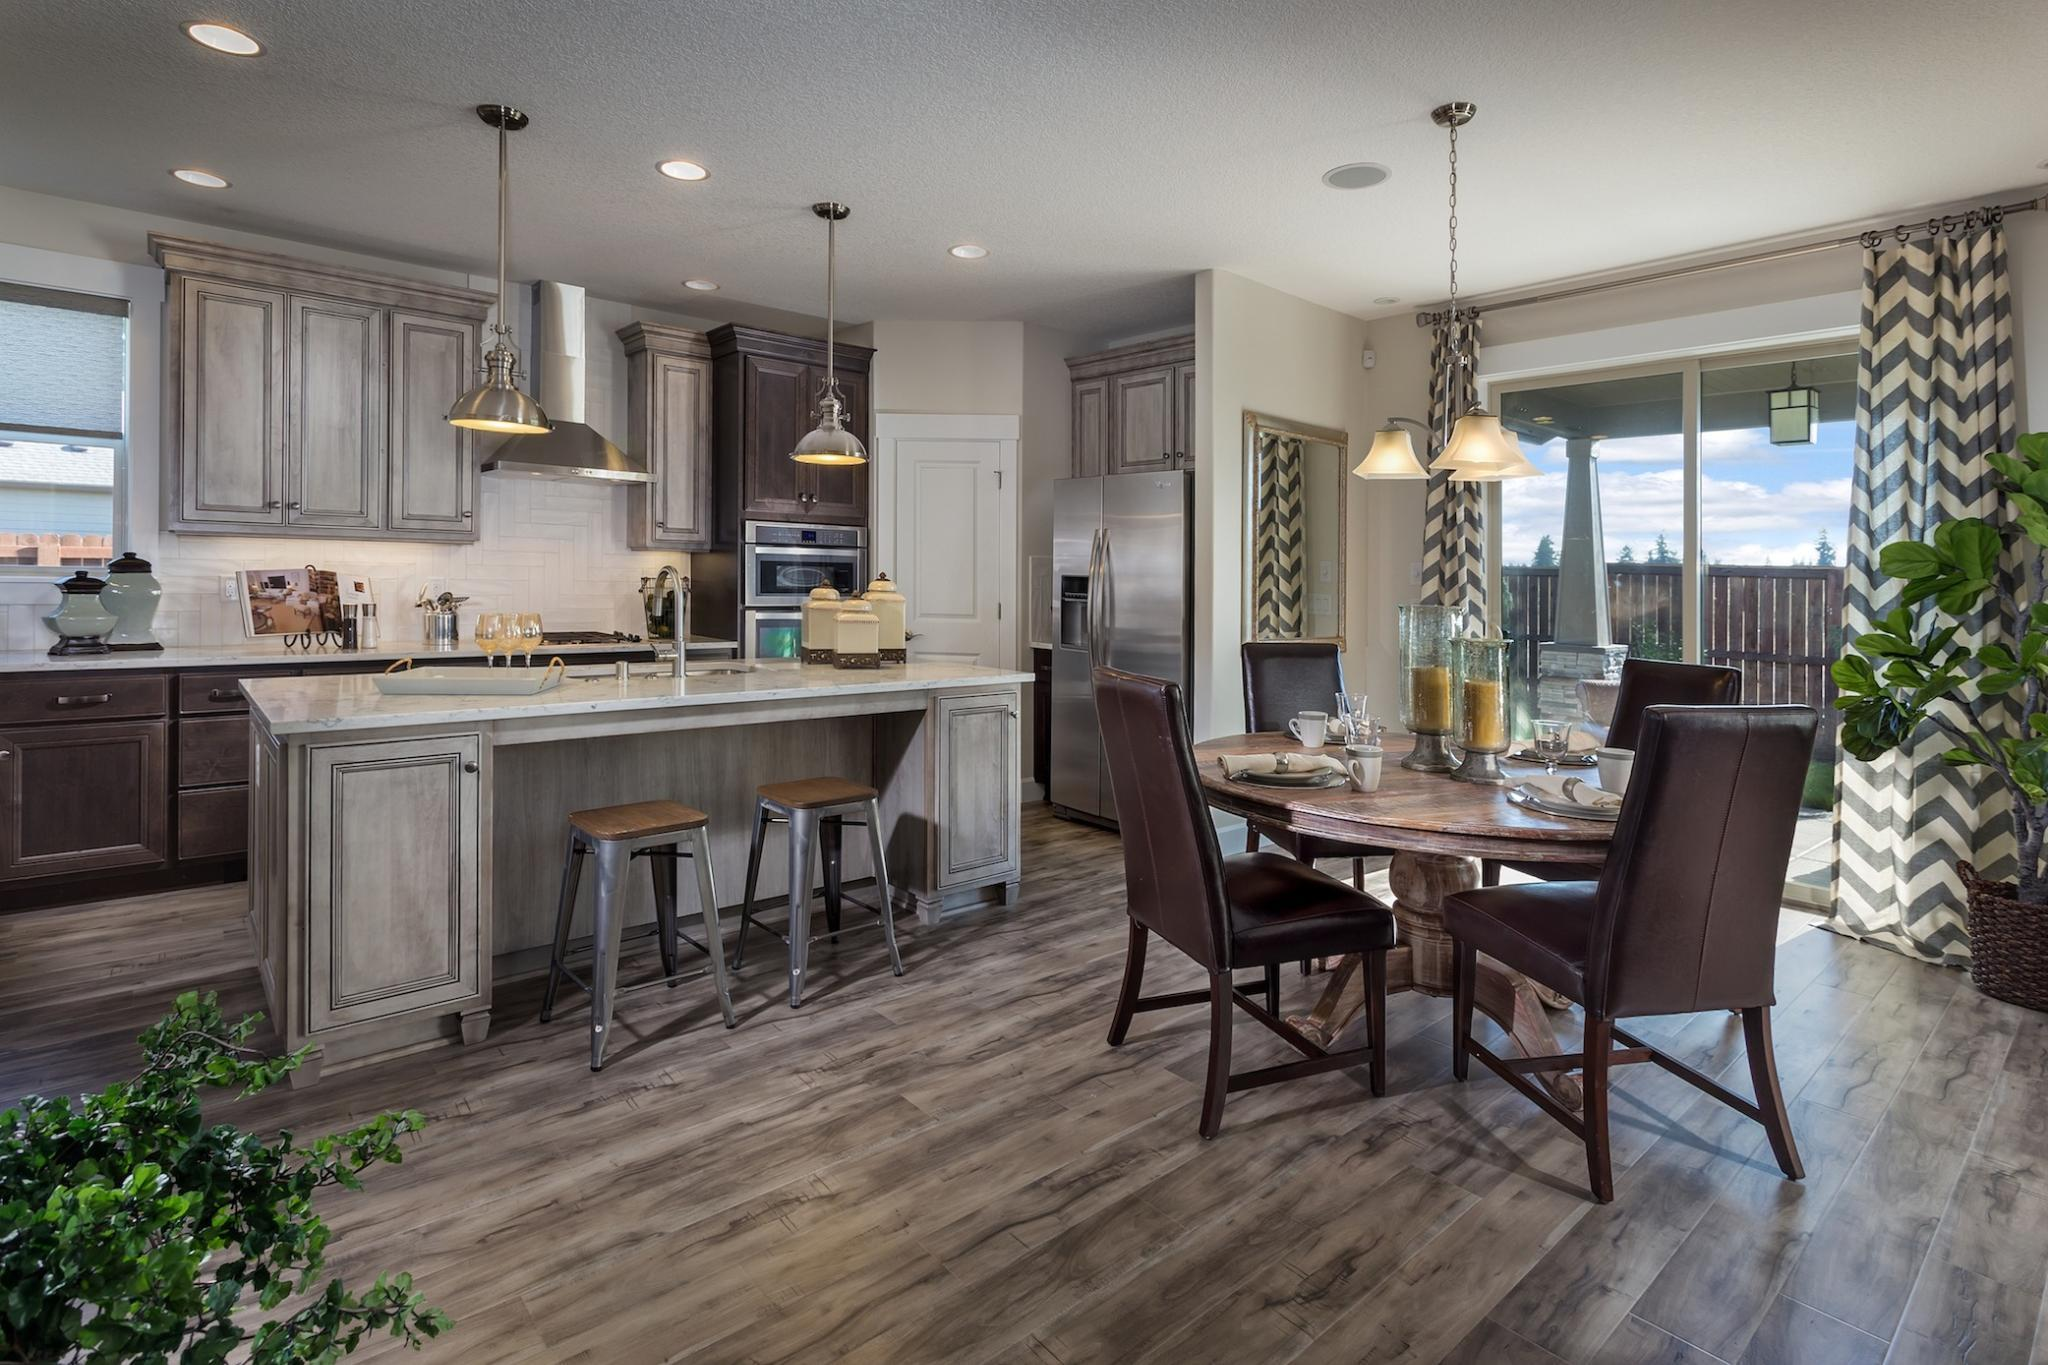 Kitchen featured in the Grandview By New Tradition Homes in Richland, WA